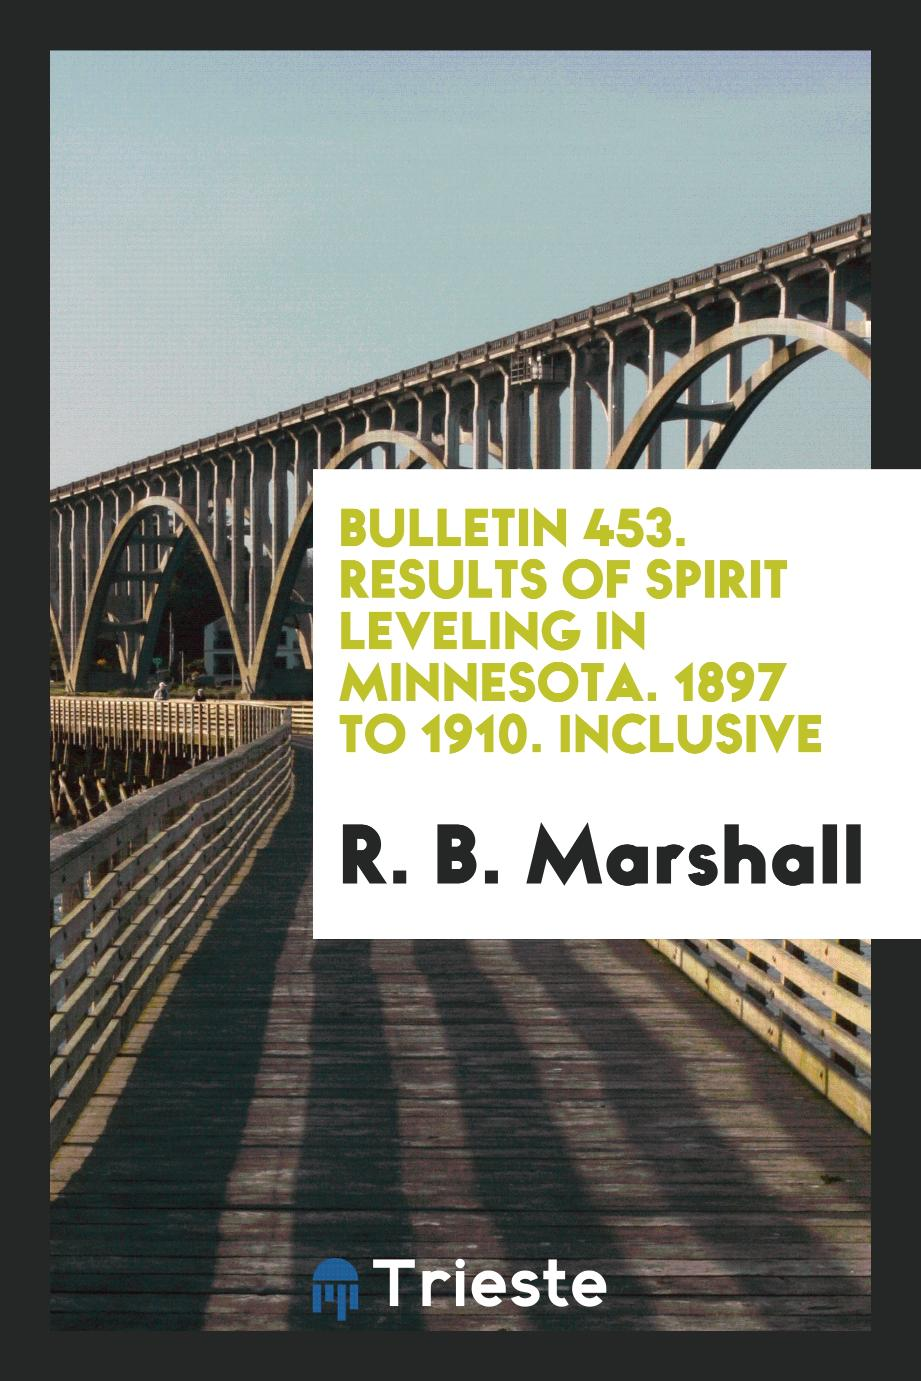 Bulletin 453. Results of Spirit Leveling in Minnesota. 1897 to 1910. Inclusive